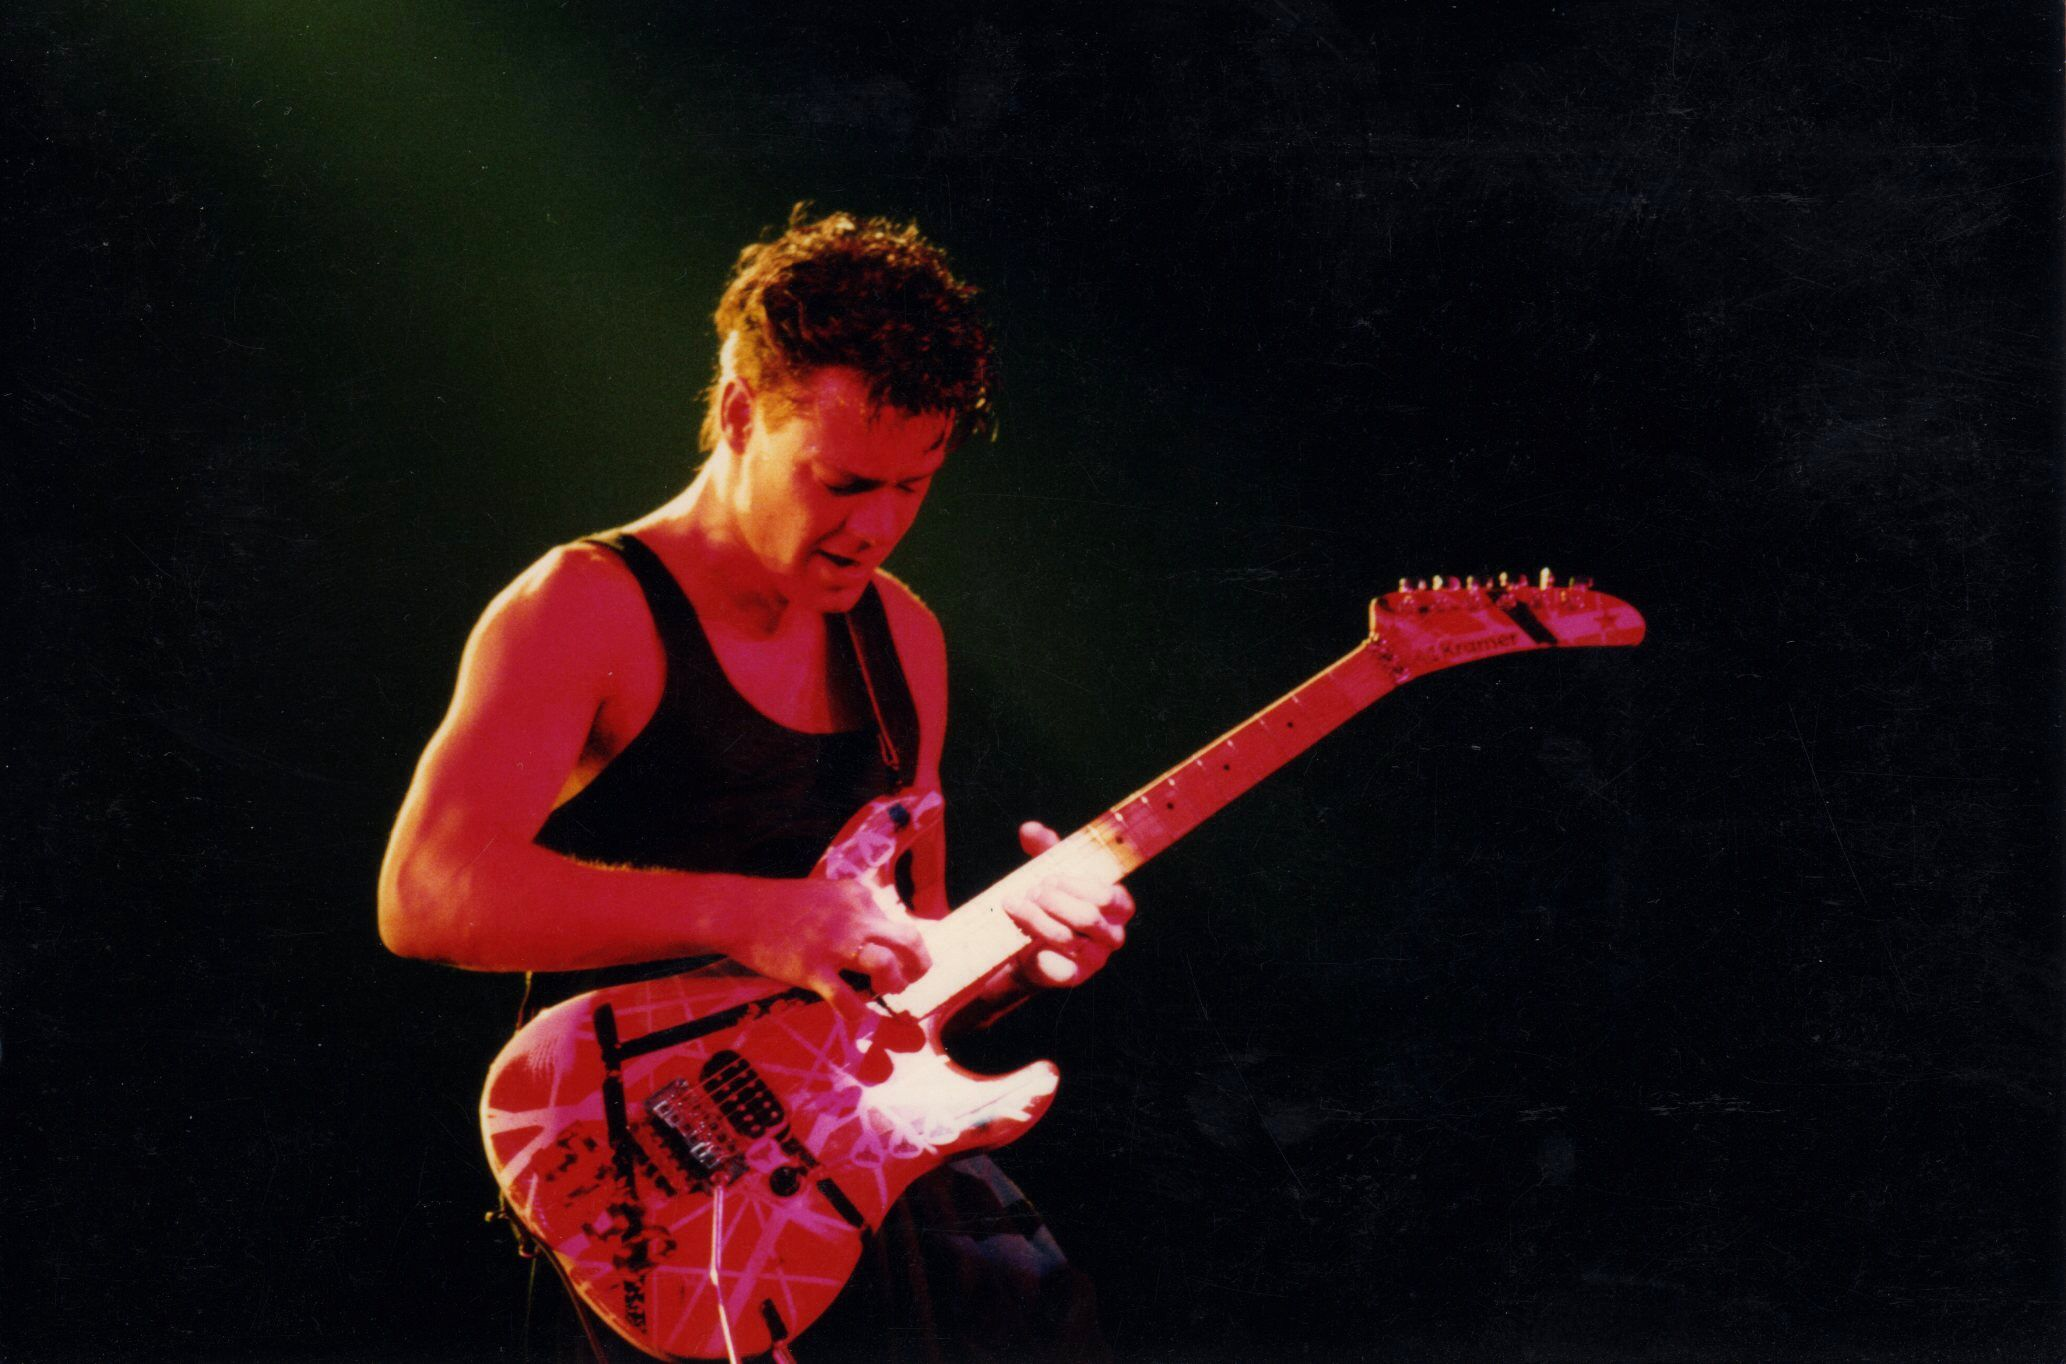 Eddie Van Halen At San Francisco 1986 Last Show Of The 5150 Tour Note Short Hair Van Halen Eddie Van Halen Van Halen 5150